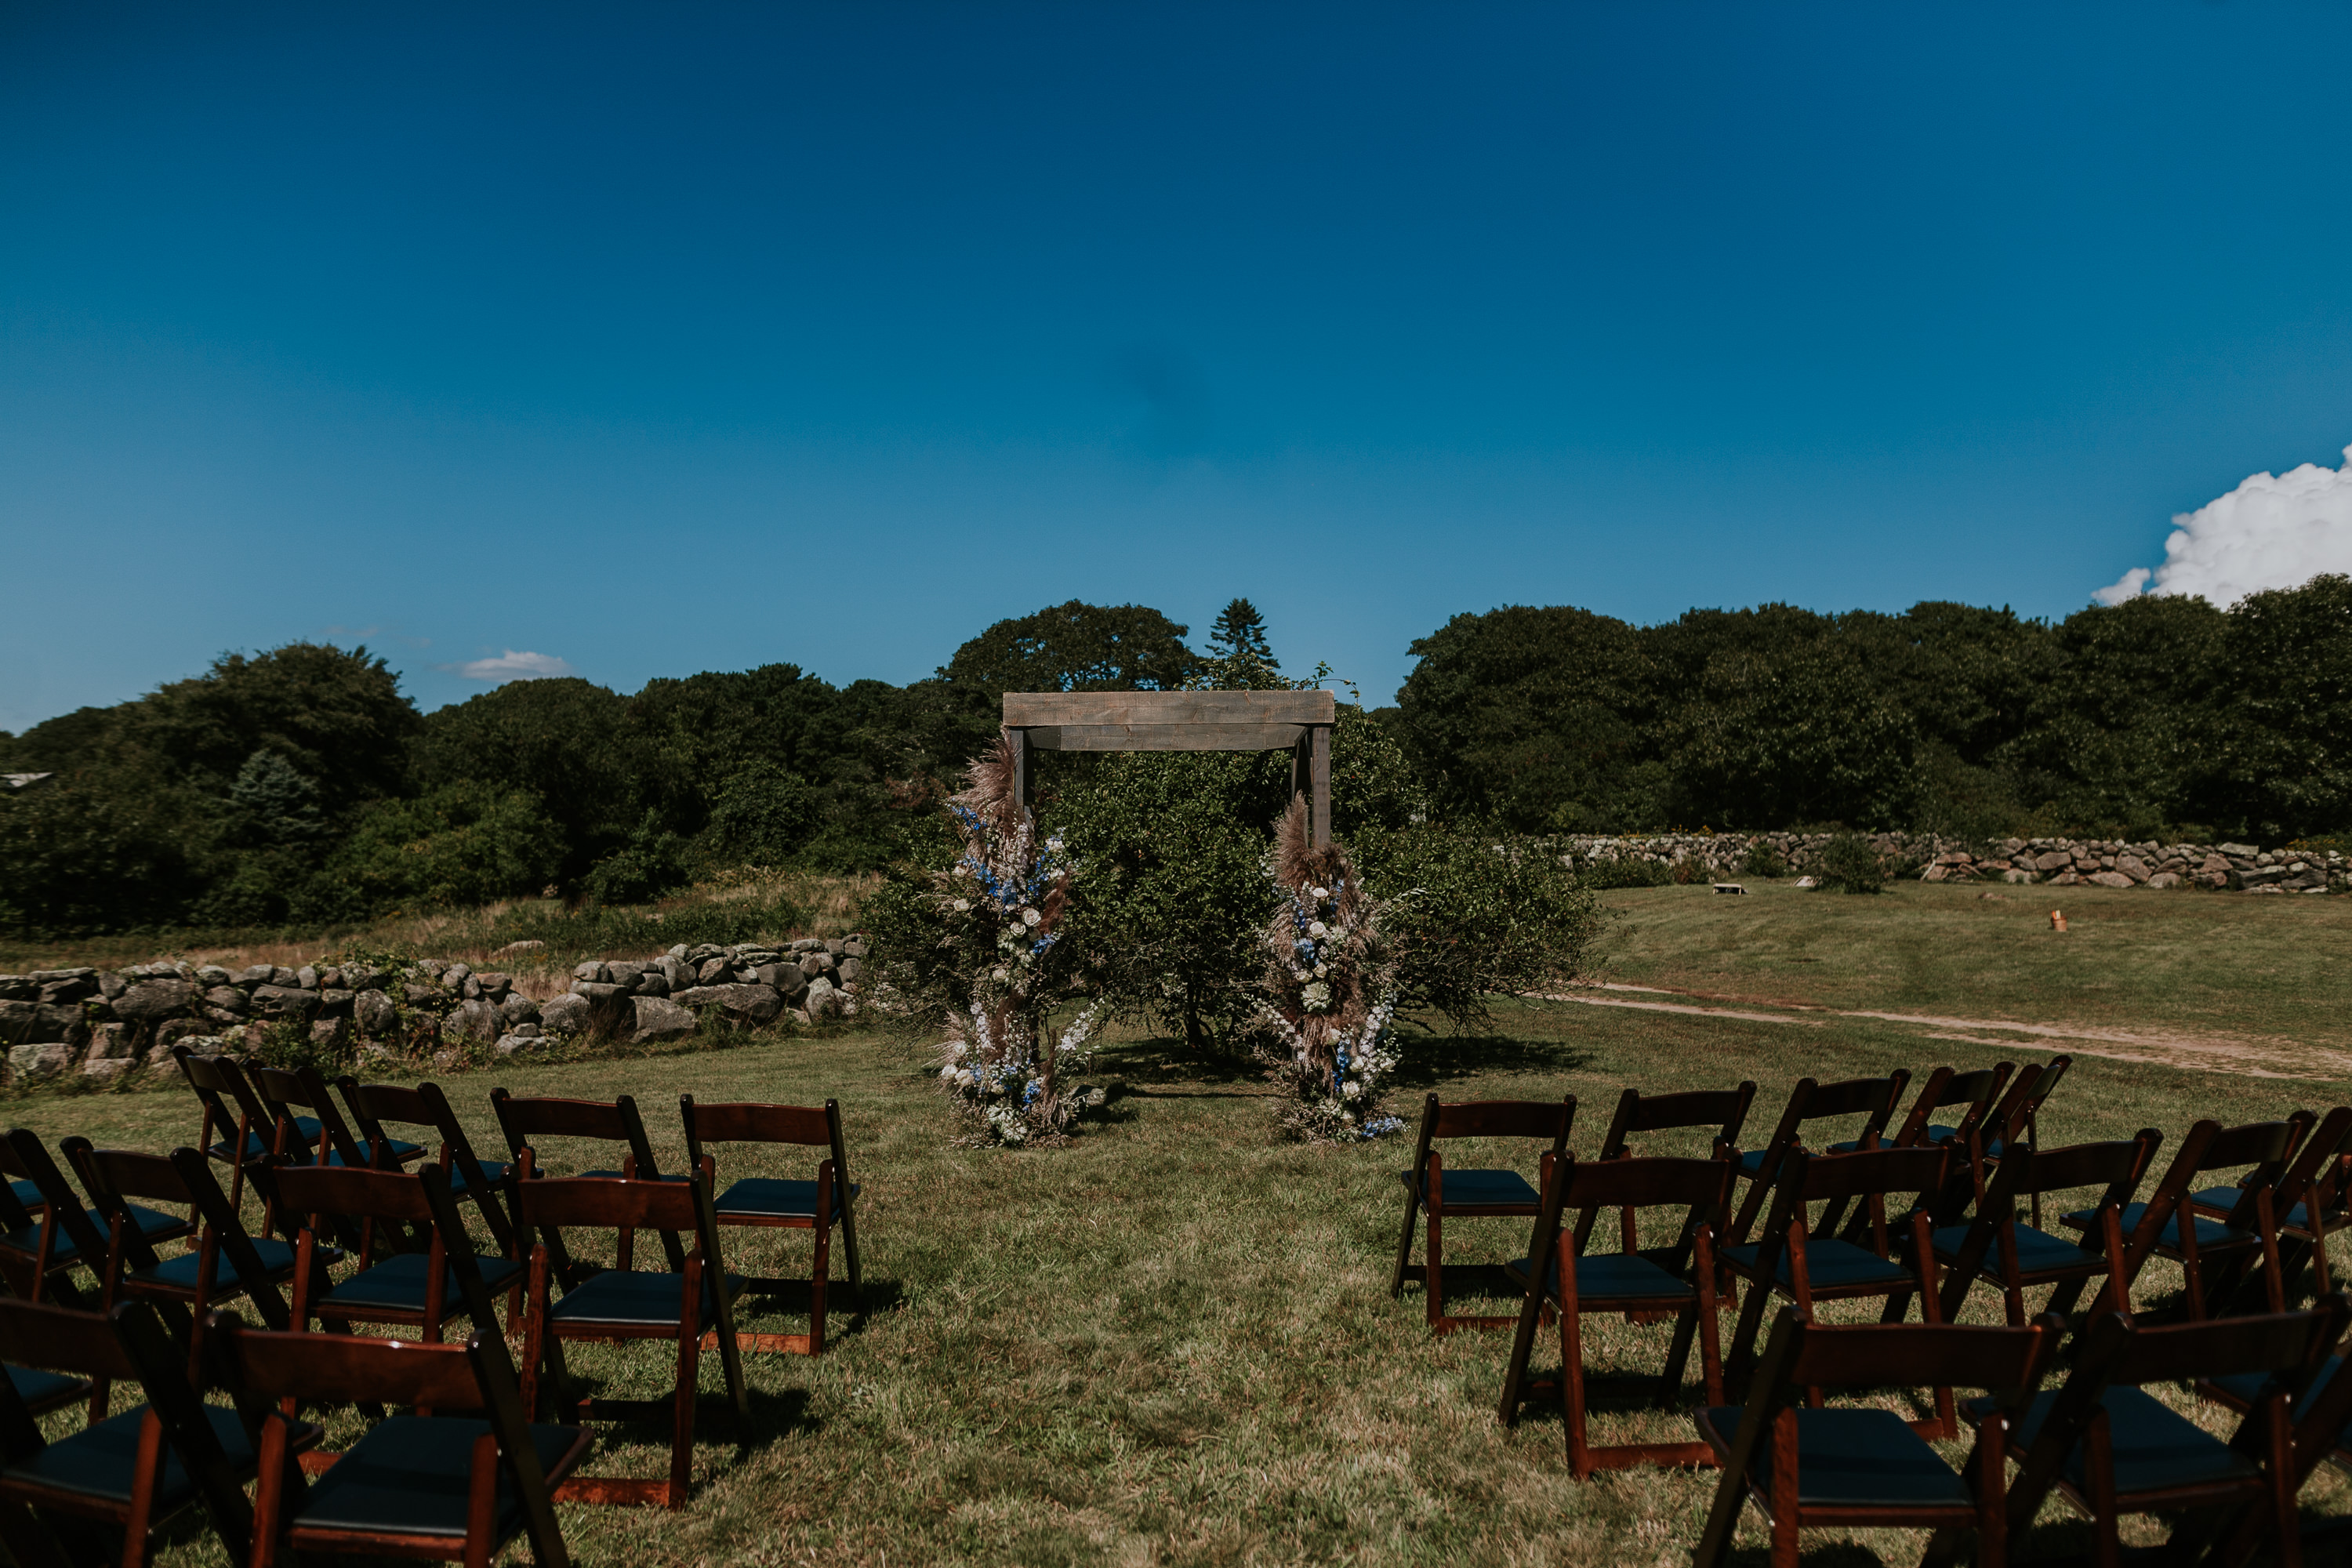 ladies of foret, ladies of foret florals, ceremony florals, martha's vineyard ceremony, floral arch